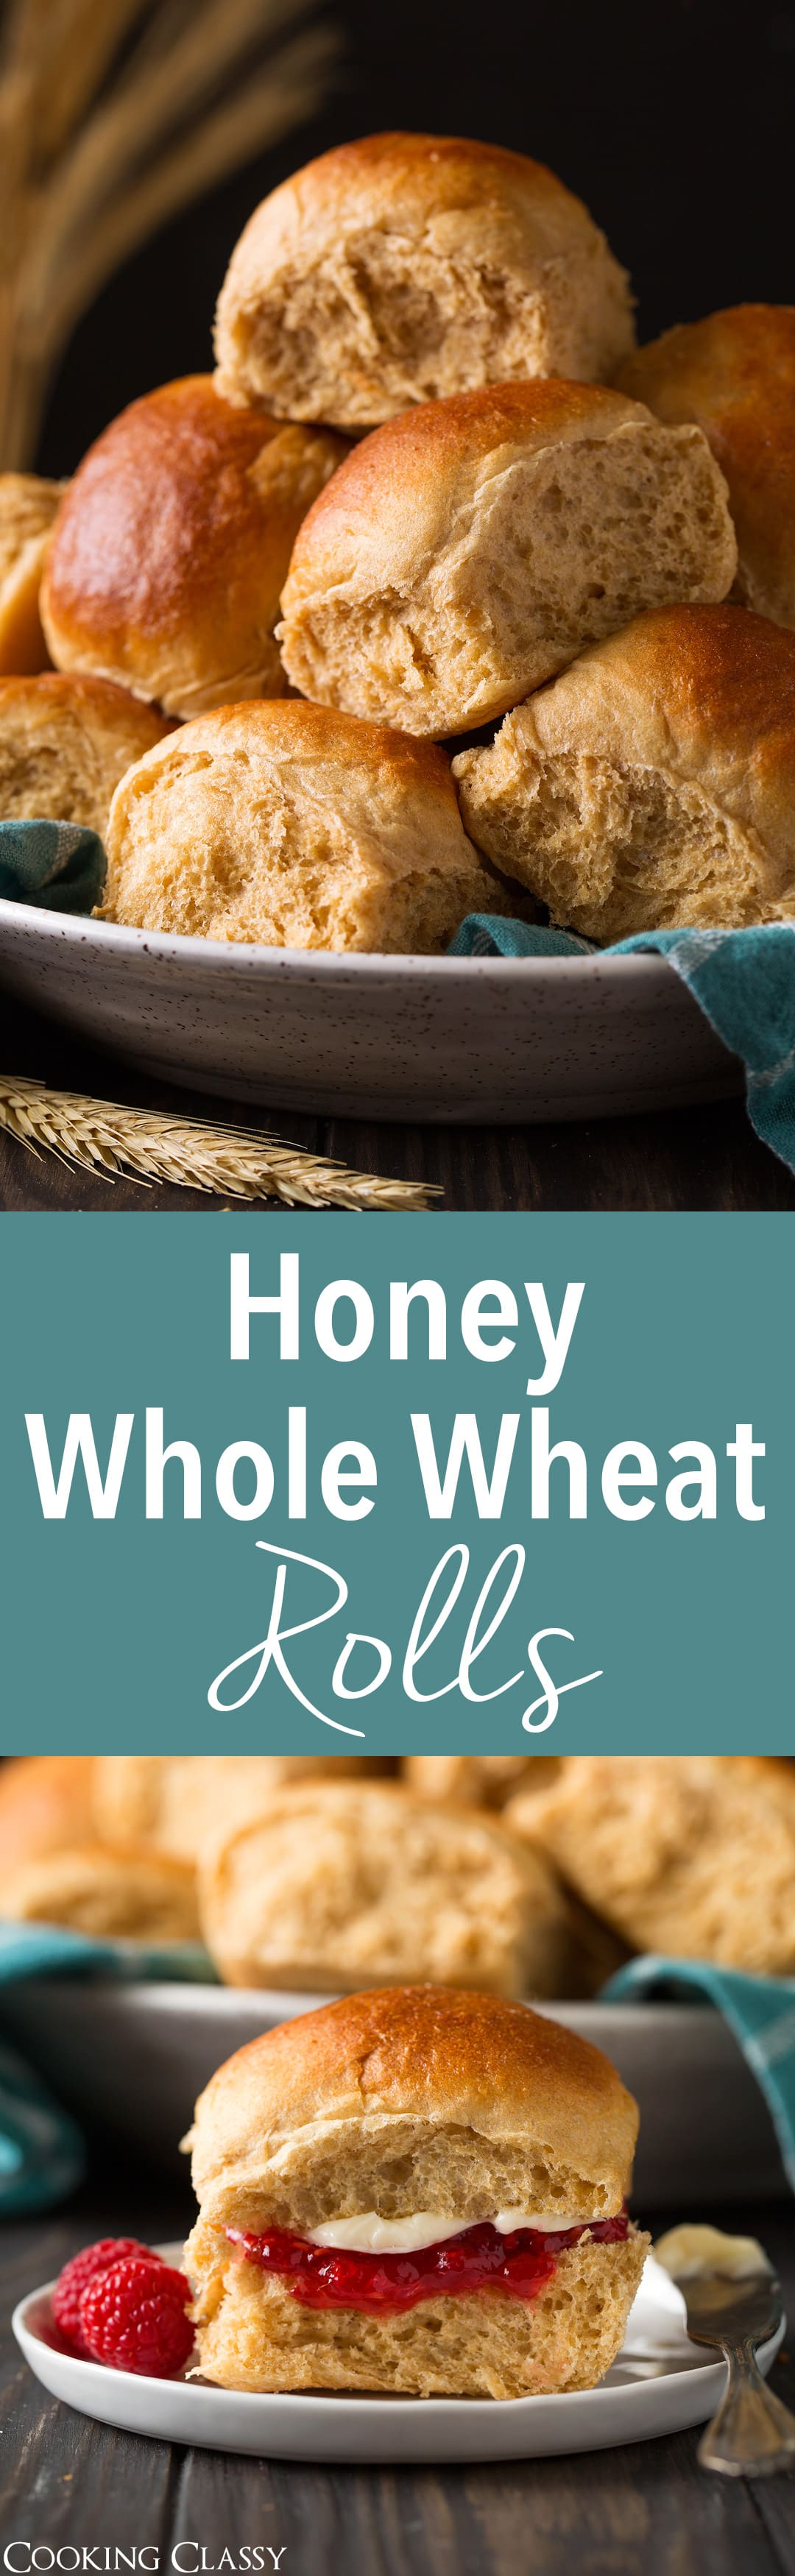 Honey Whole Wheat Rolls - Soft and fluffy rolls made from 100% whole wheat flour. Delicious with homemade freezer jam and a generous slathering of butter. #wheat #rolls #thanksgiving #recipe